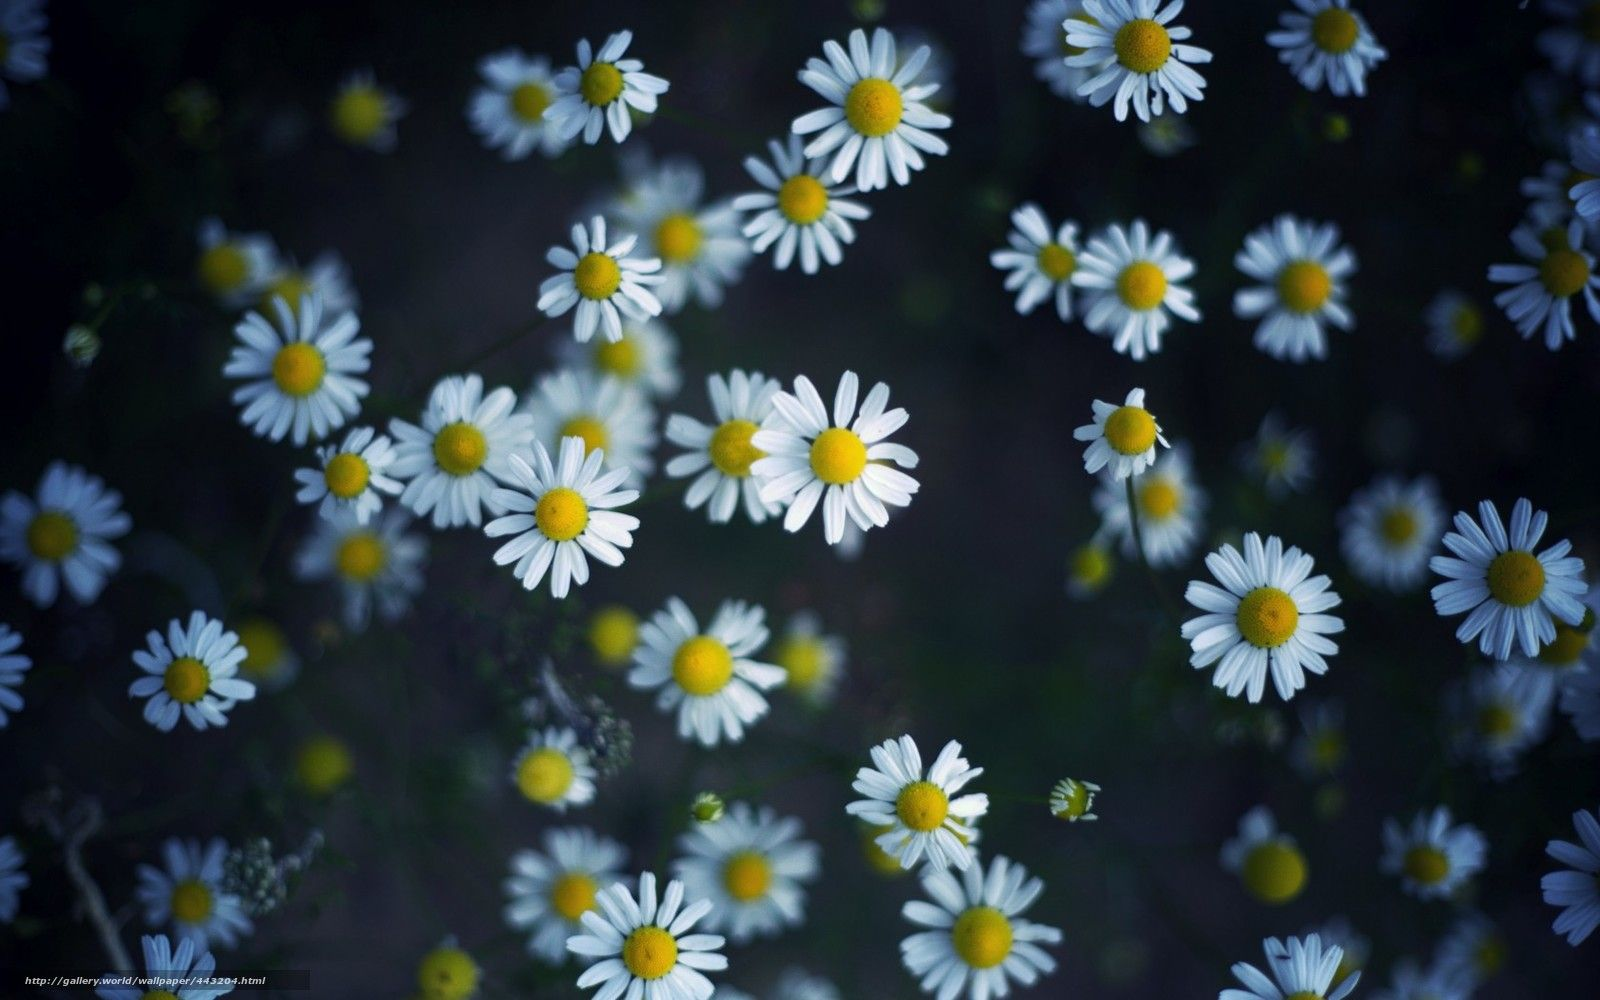 Wallpaper daisies wallpapers k pinterest daisy wallpaper and